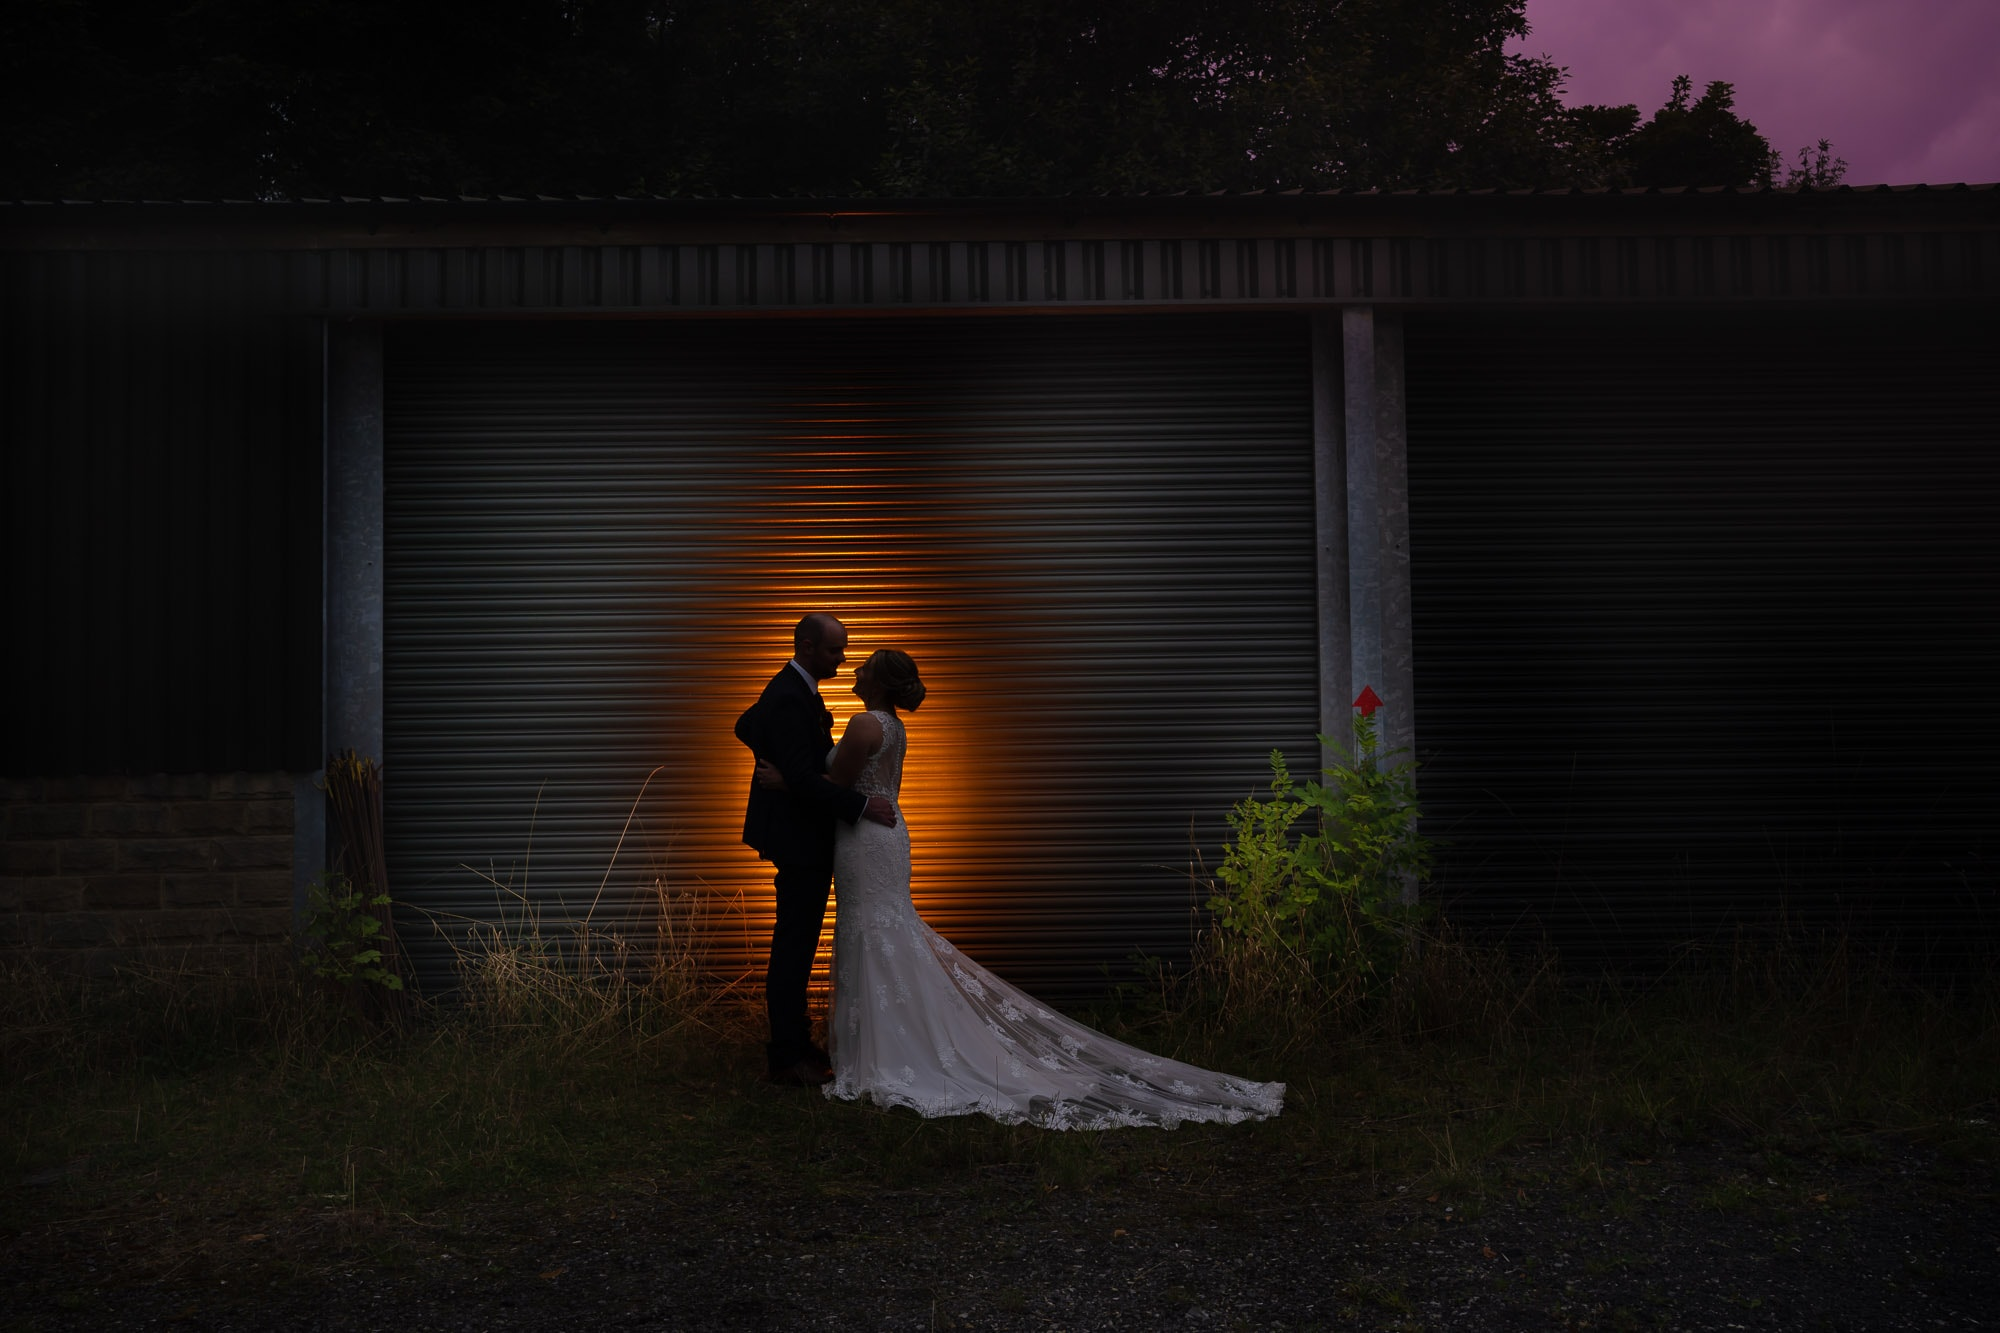 Artistic wedding photography in chesterfield